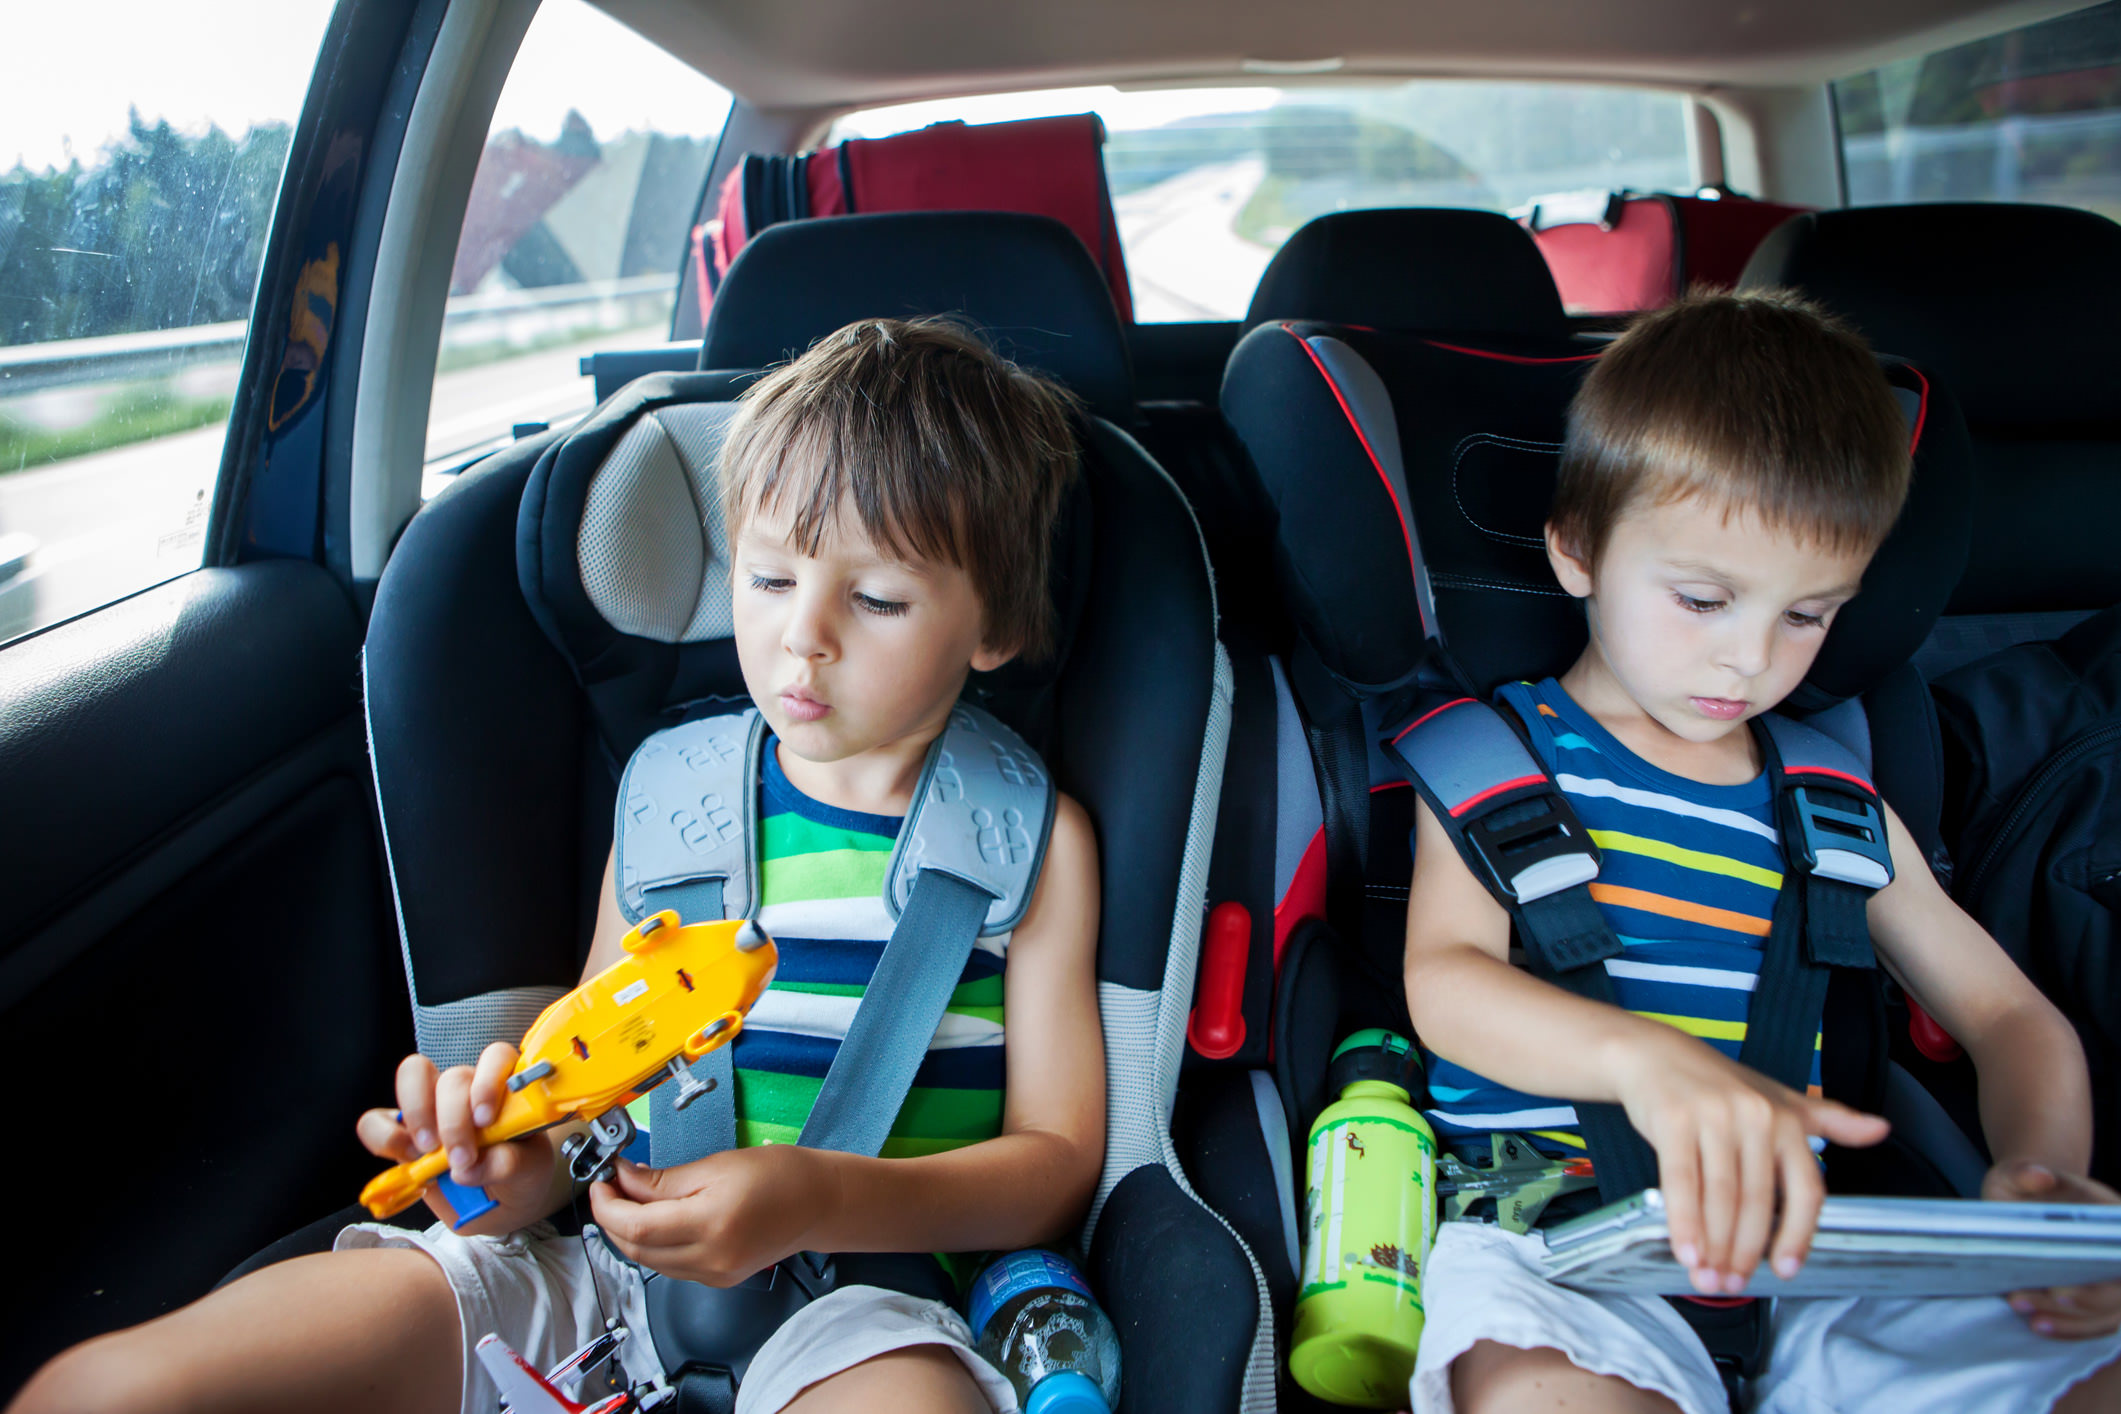 Two kids playing with toys. essential accessories to pack in a car for a road trip